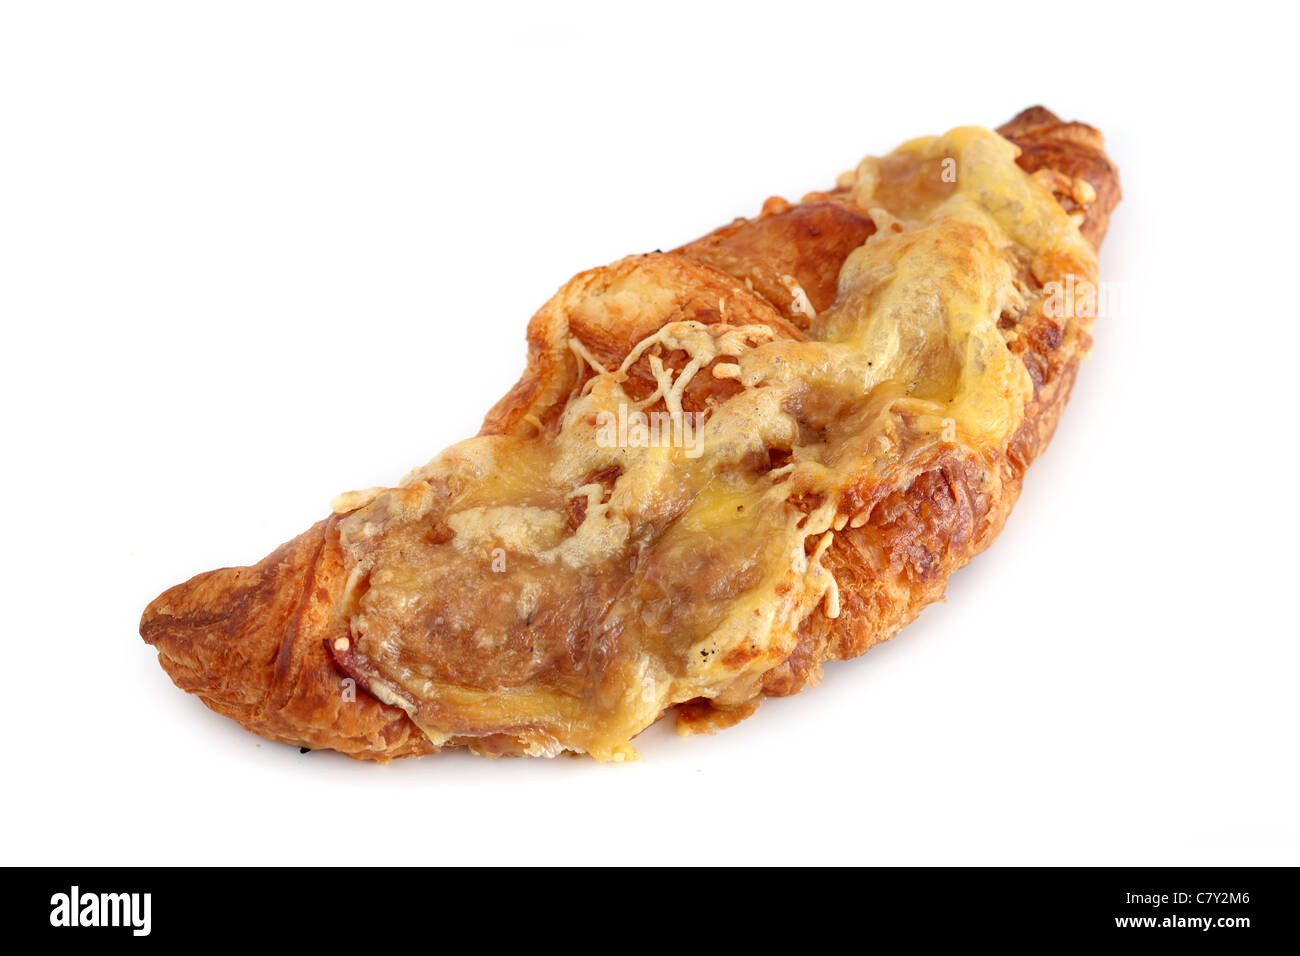 Croissant jambon fromage Ham Cheese Croissant - Stock Image